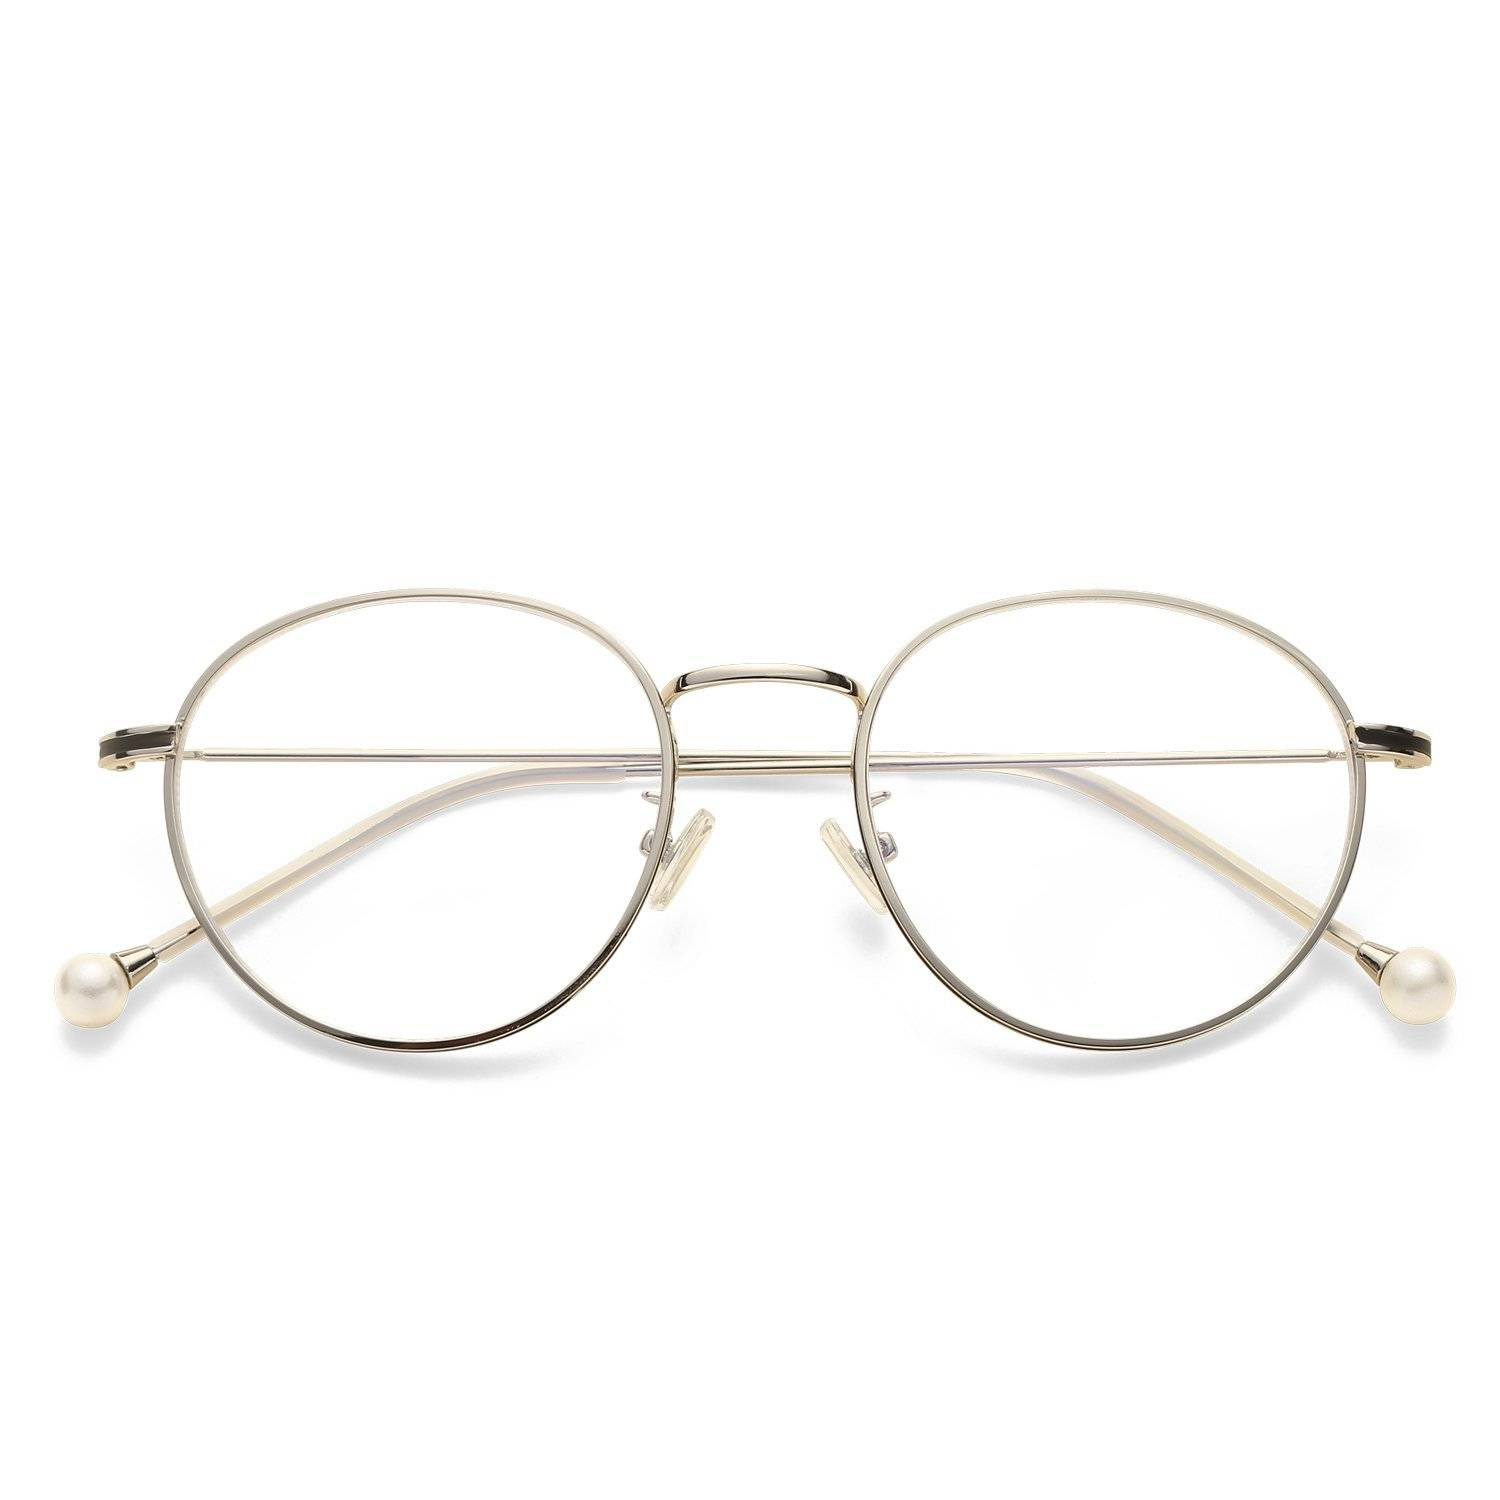 Nereide Oval Black Silver Blue Light Blocking Glasses. SHOP NOW